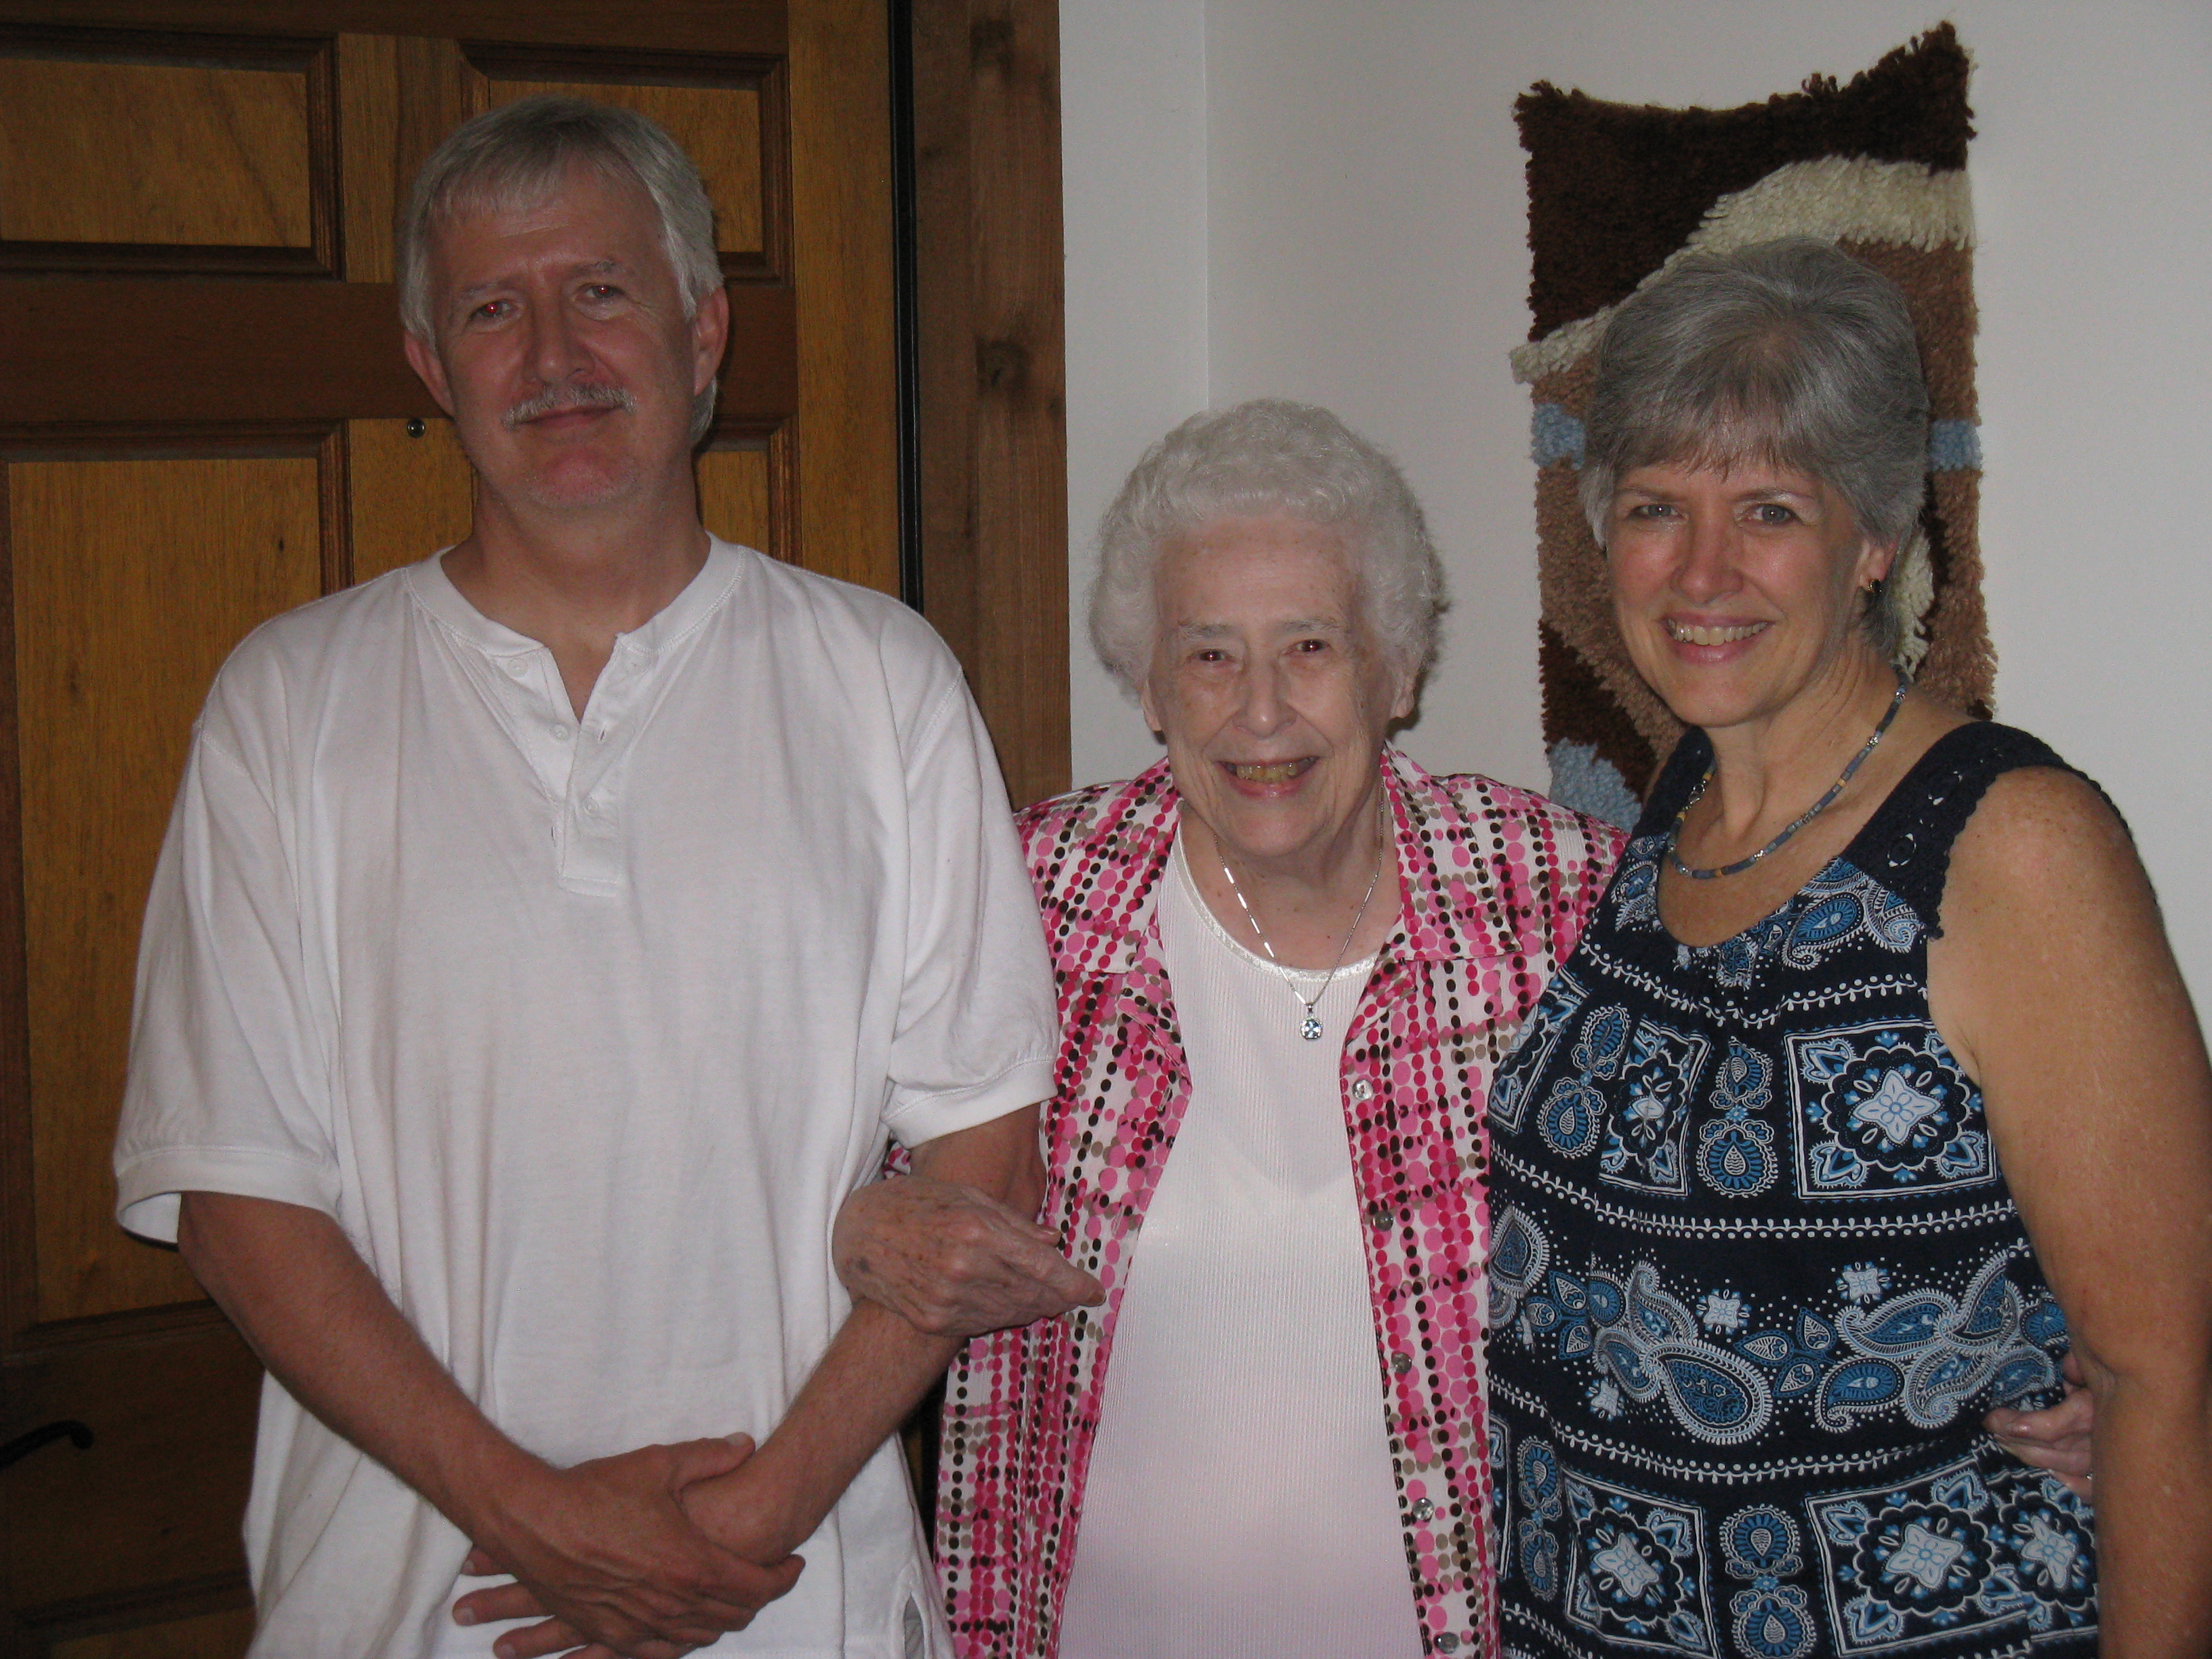 Lois and her children, Mark and Janet.